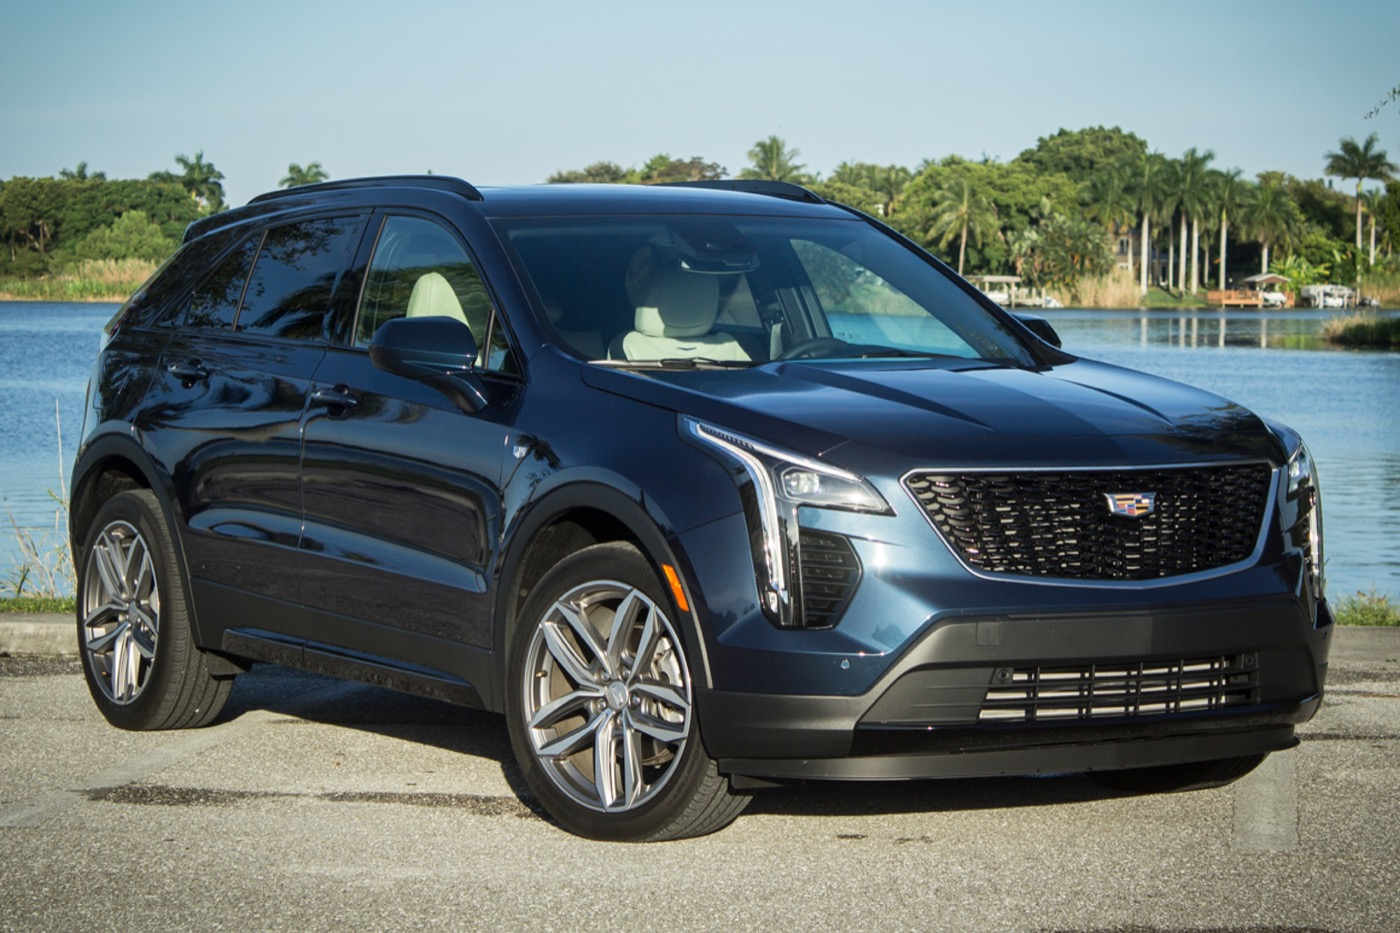 Cadillac XT5 Information, Pictures, Specs, Wiki & More